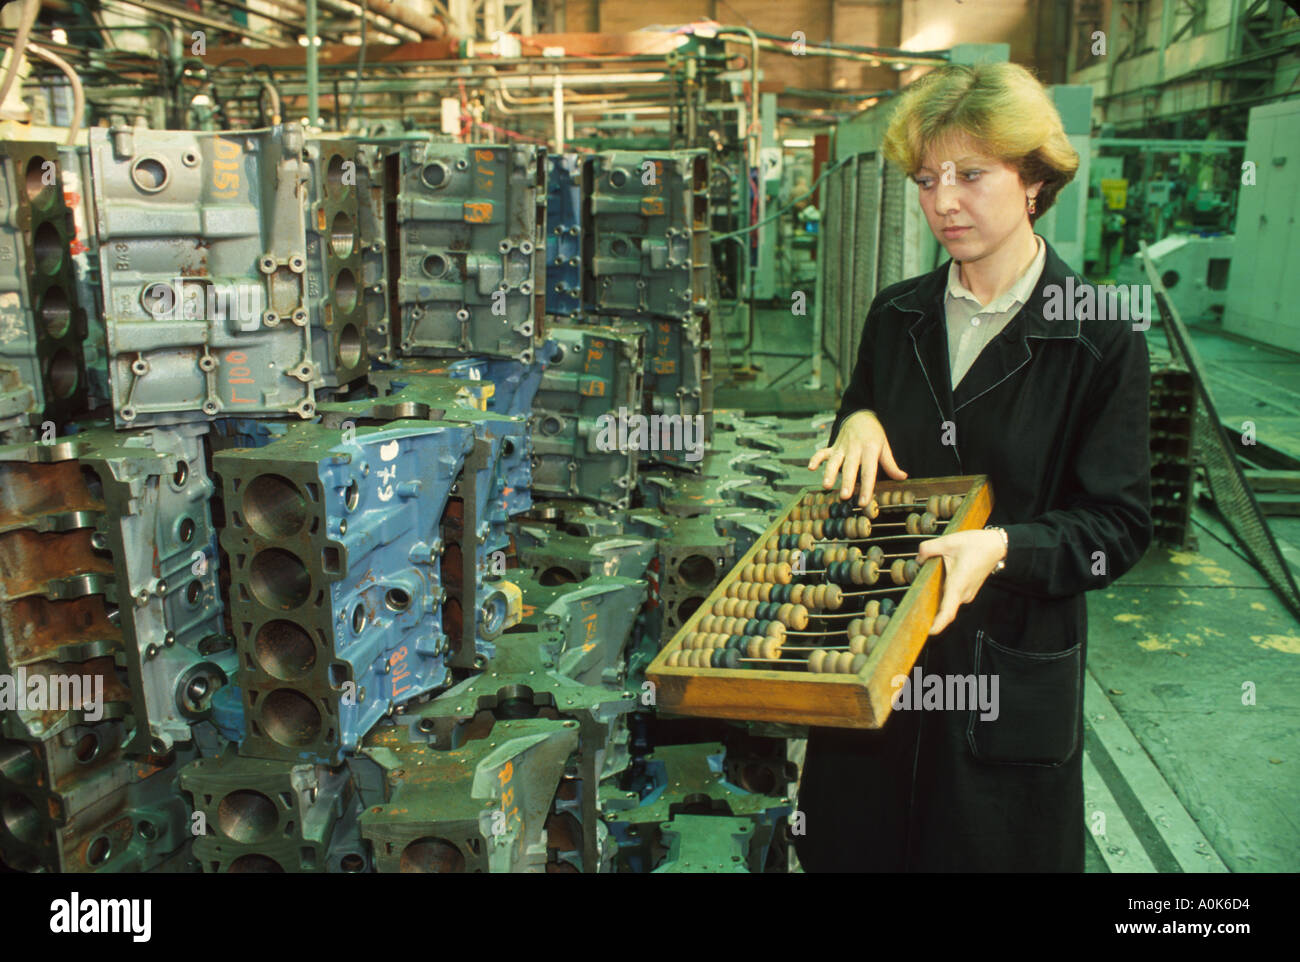 Russia former Soviet Union Moscow privatized machine shop worker using abacus - Stock Image